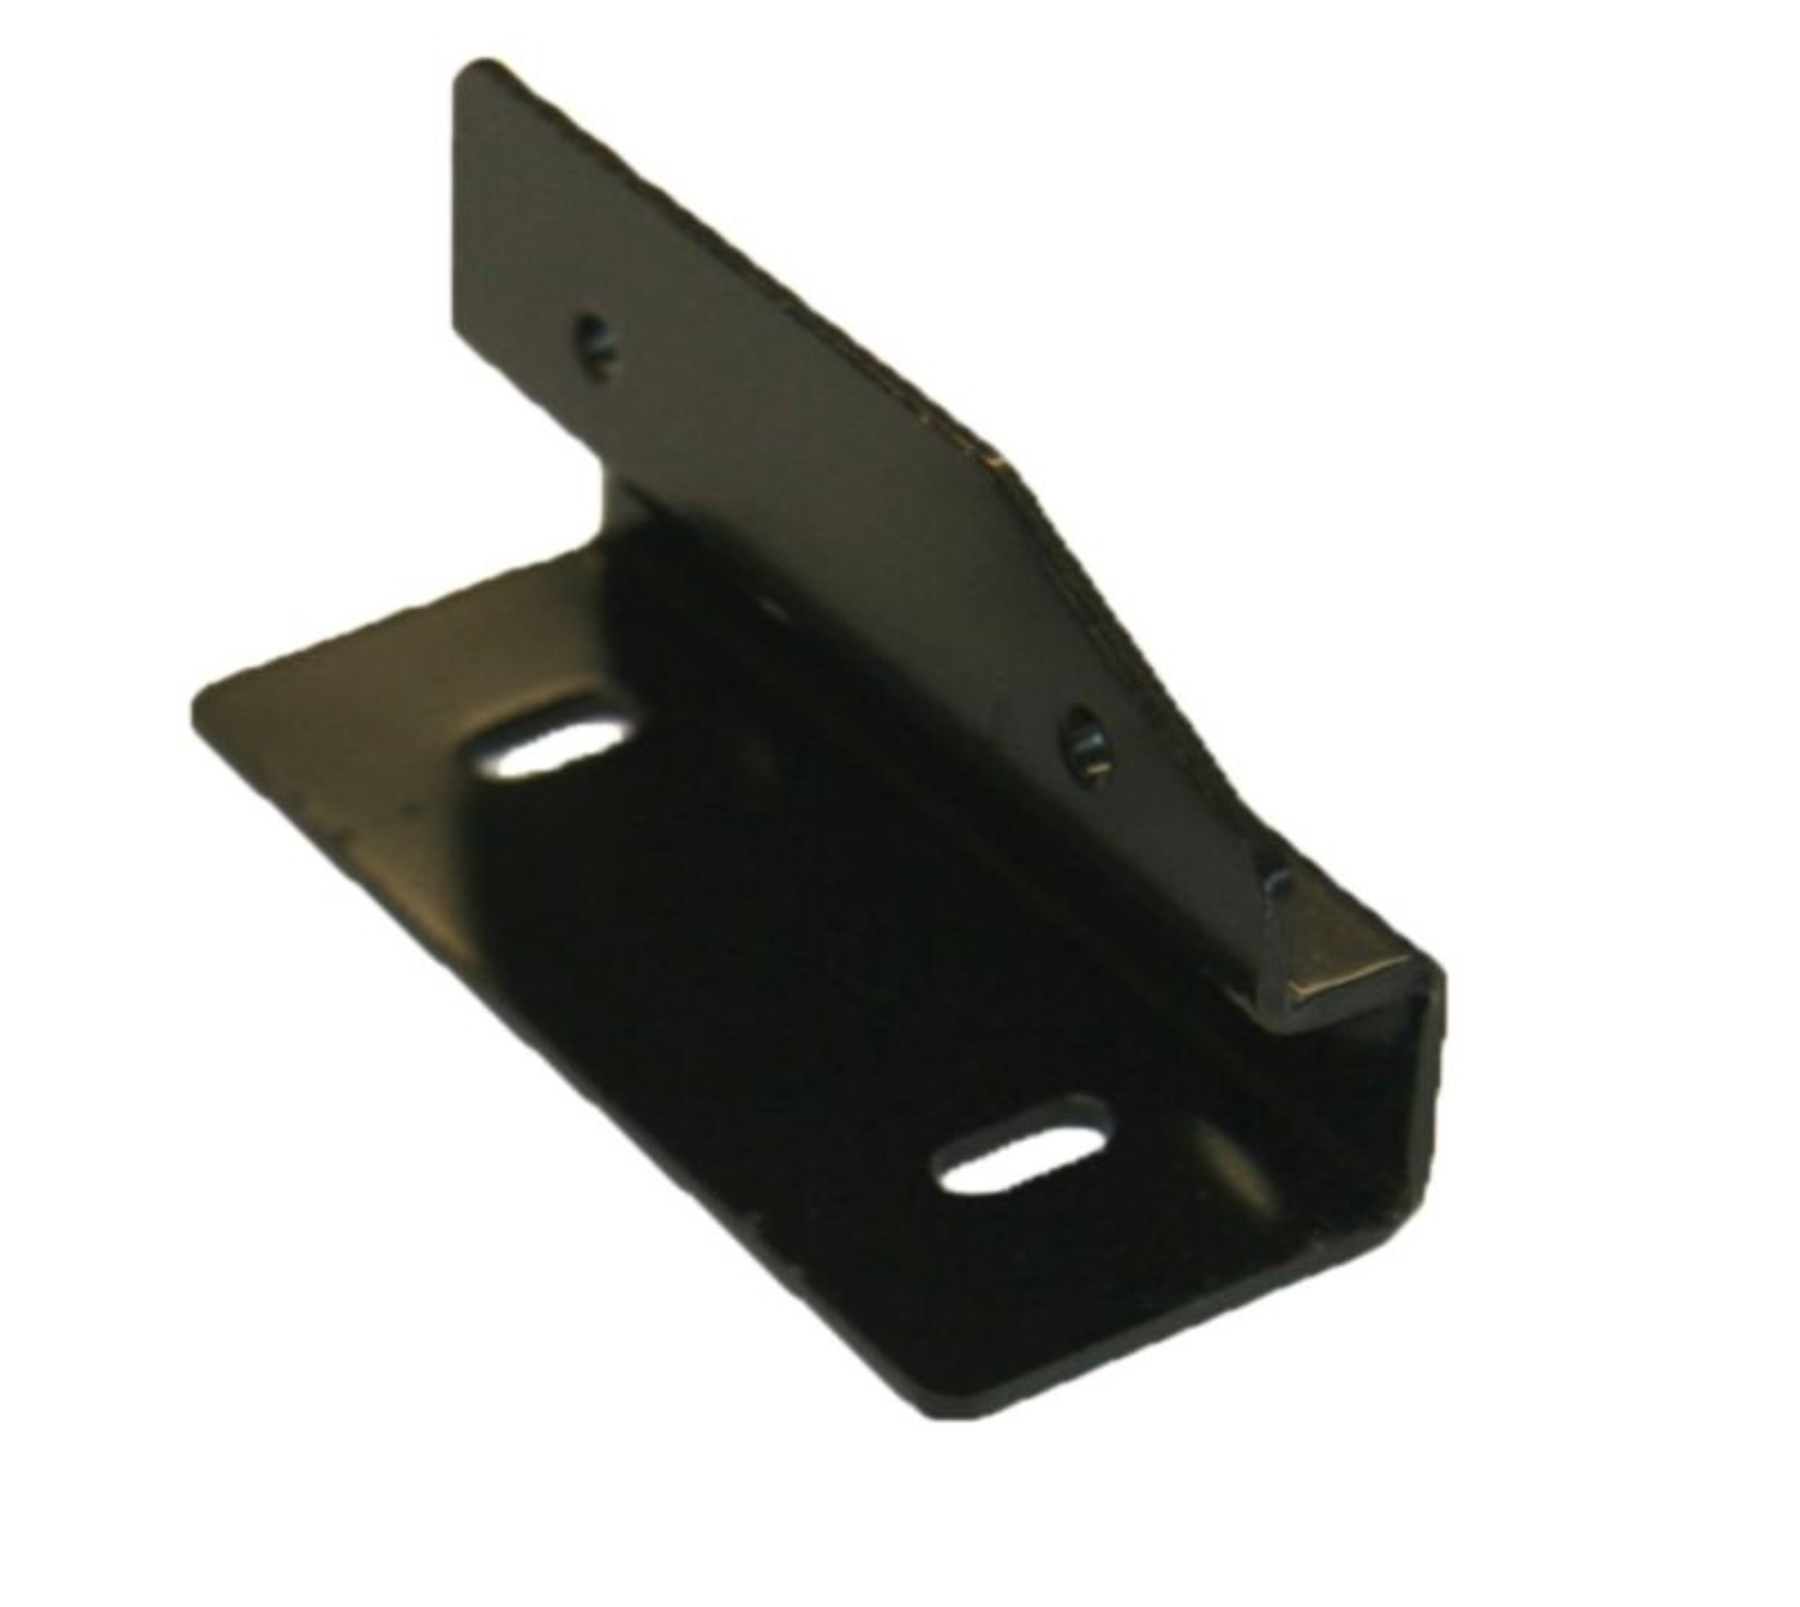 SFUP122-23A Lid Hinge Support Bracket